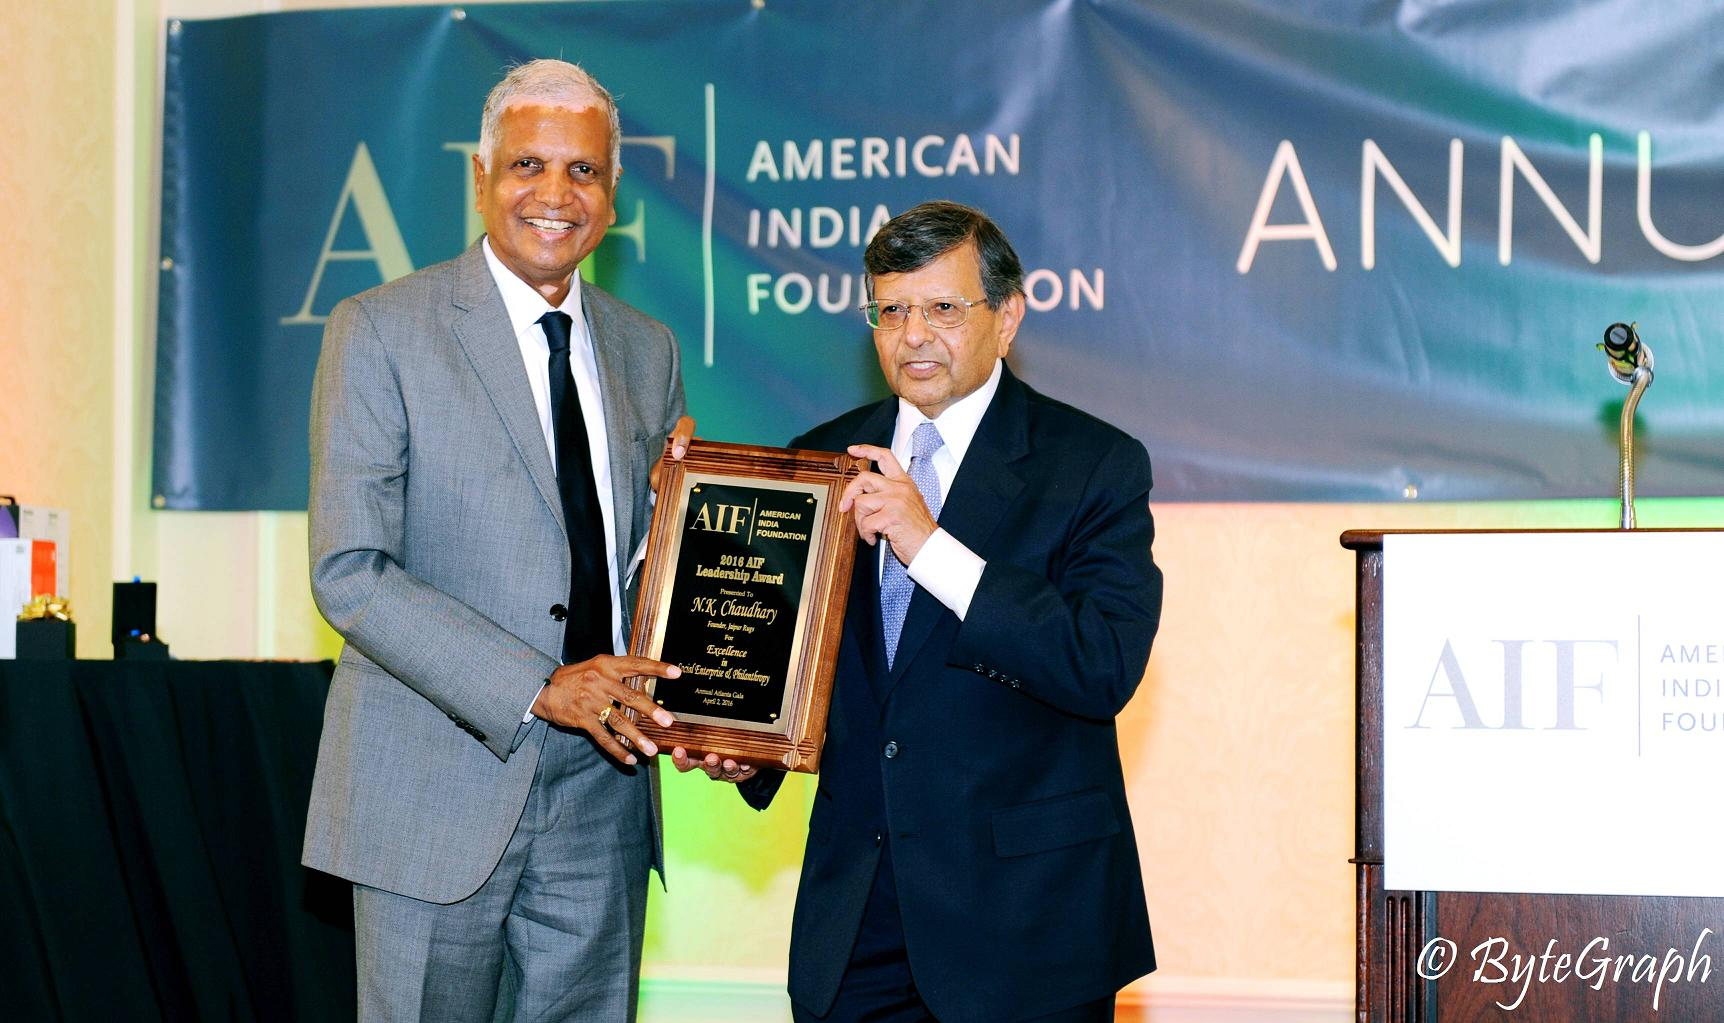 Dr. Sheth Presents Mr. N K Chaudhary with the 2016 AIF Leadership award for Excellence in Social Enterprise & Philanthropy at the AIF Atlanta Gala